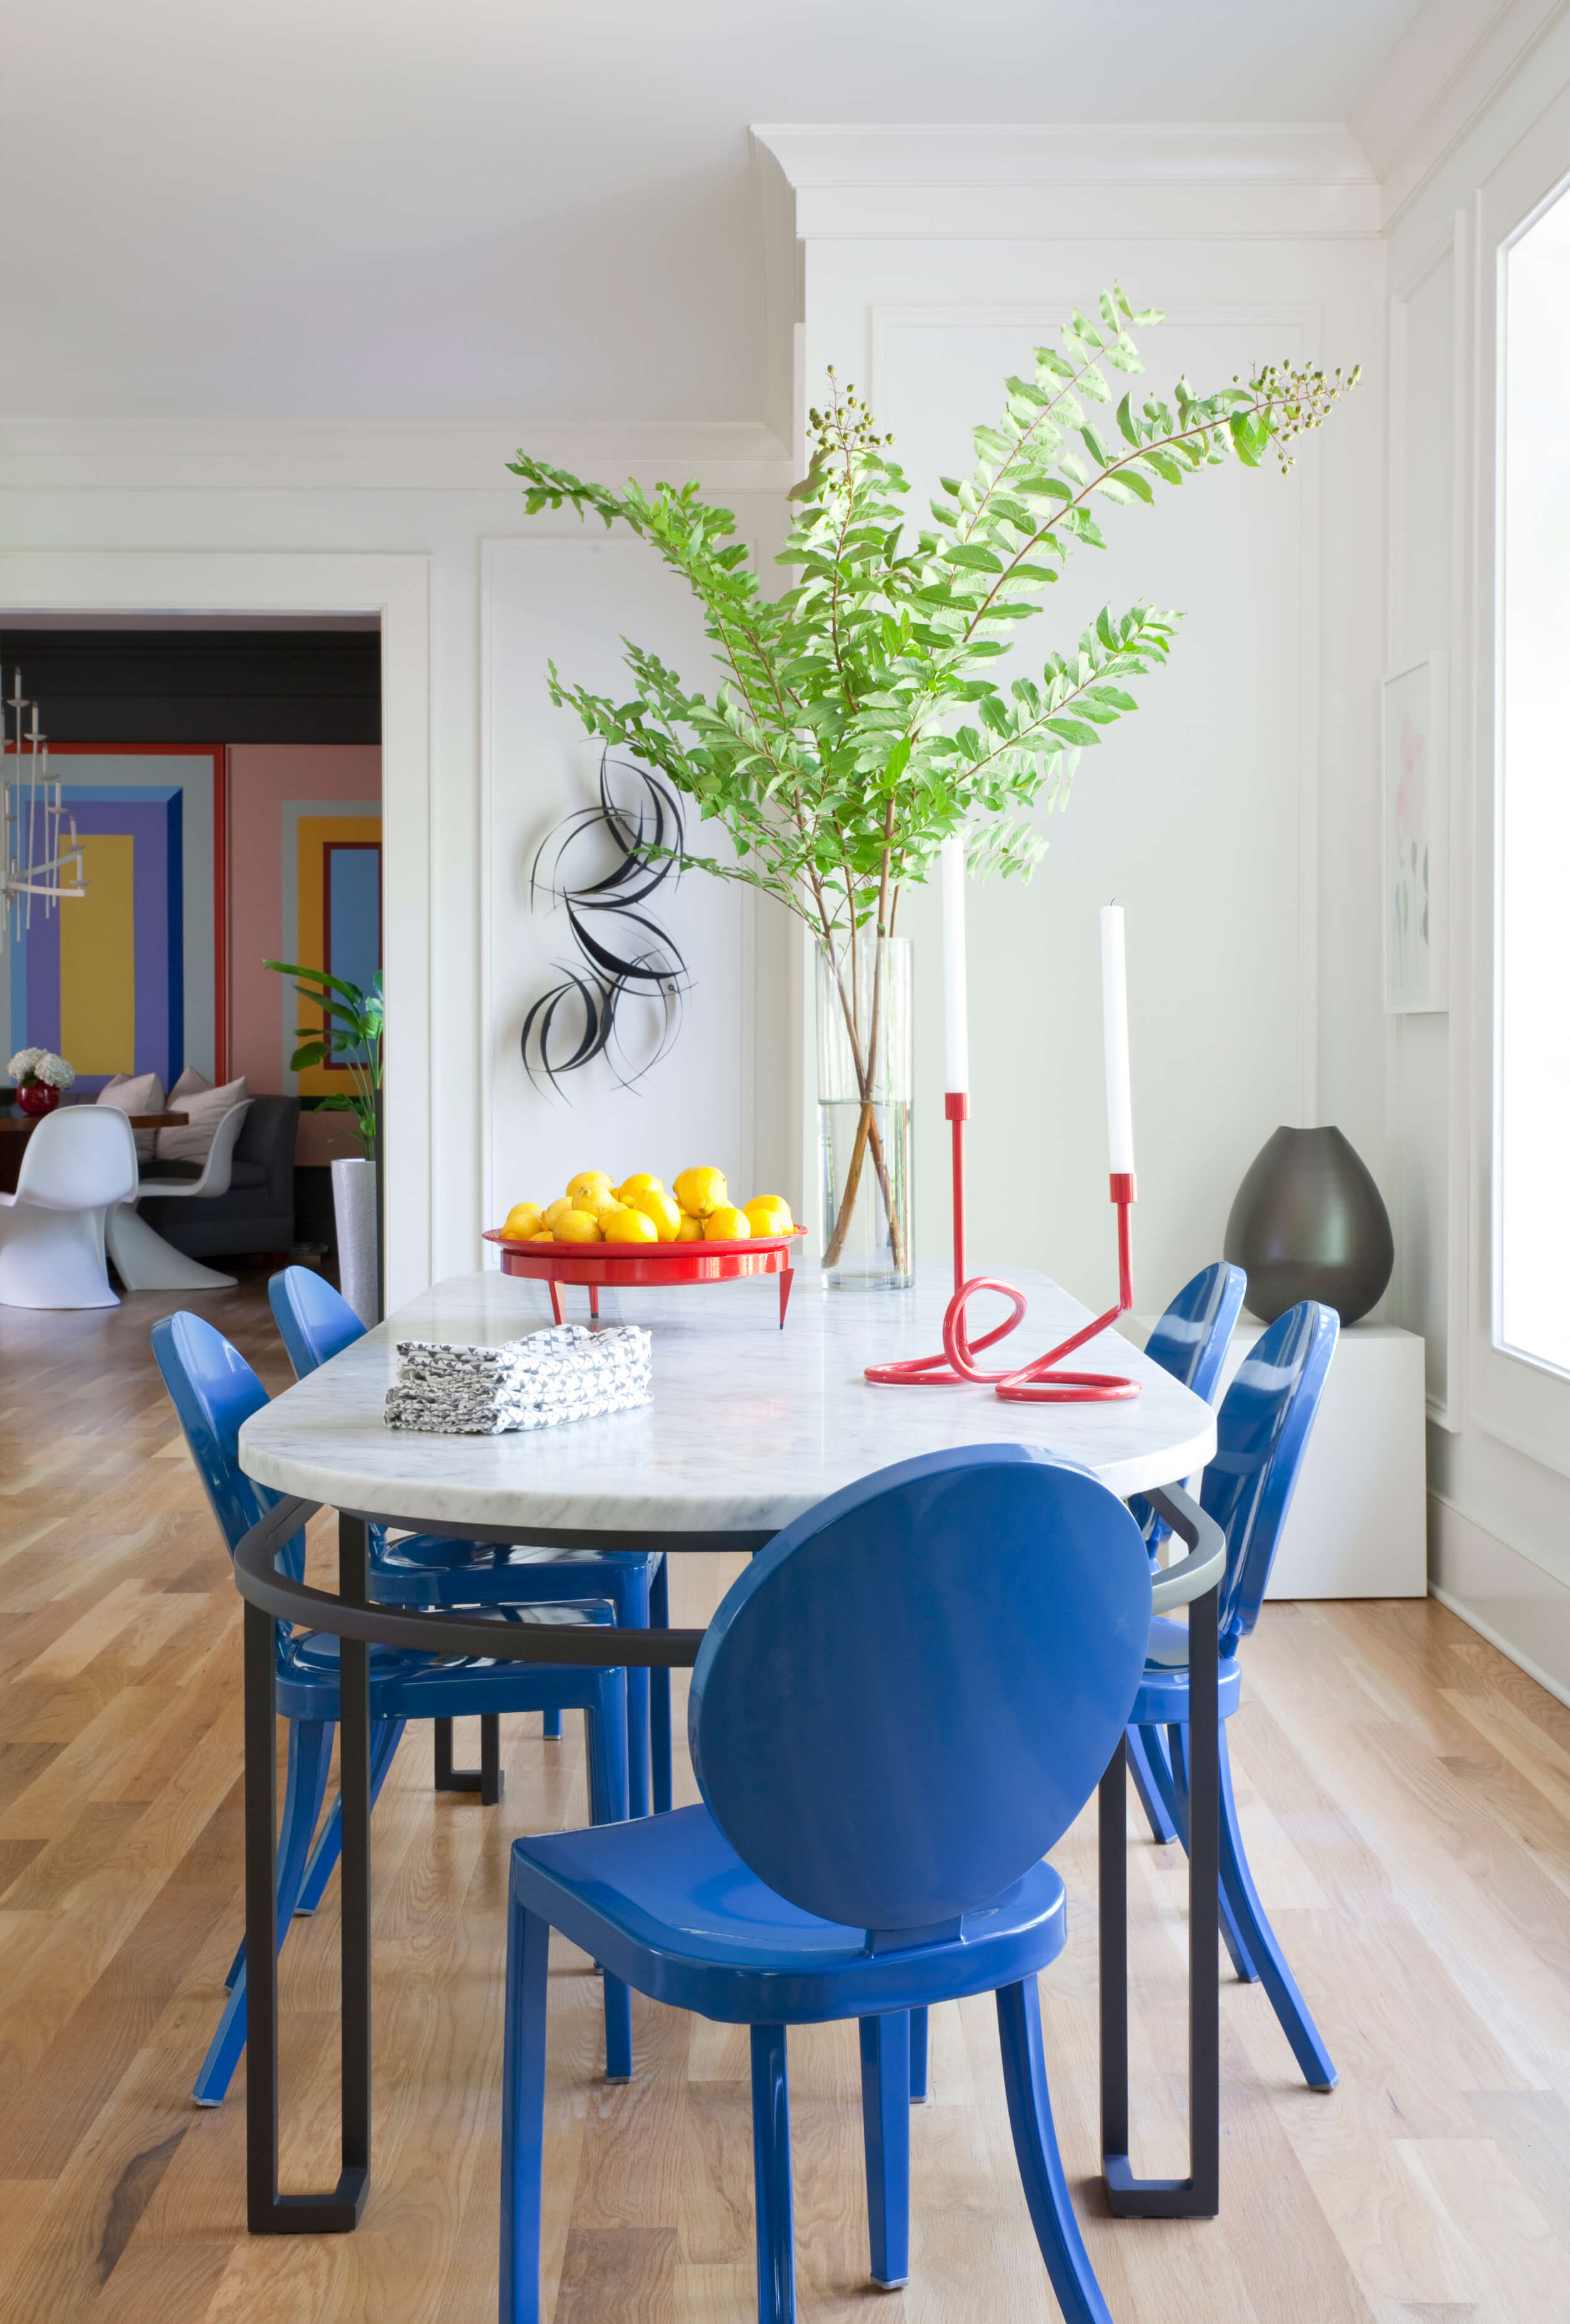 At Home With Angela Blehm